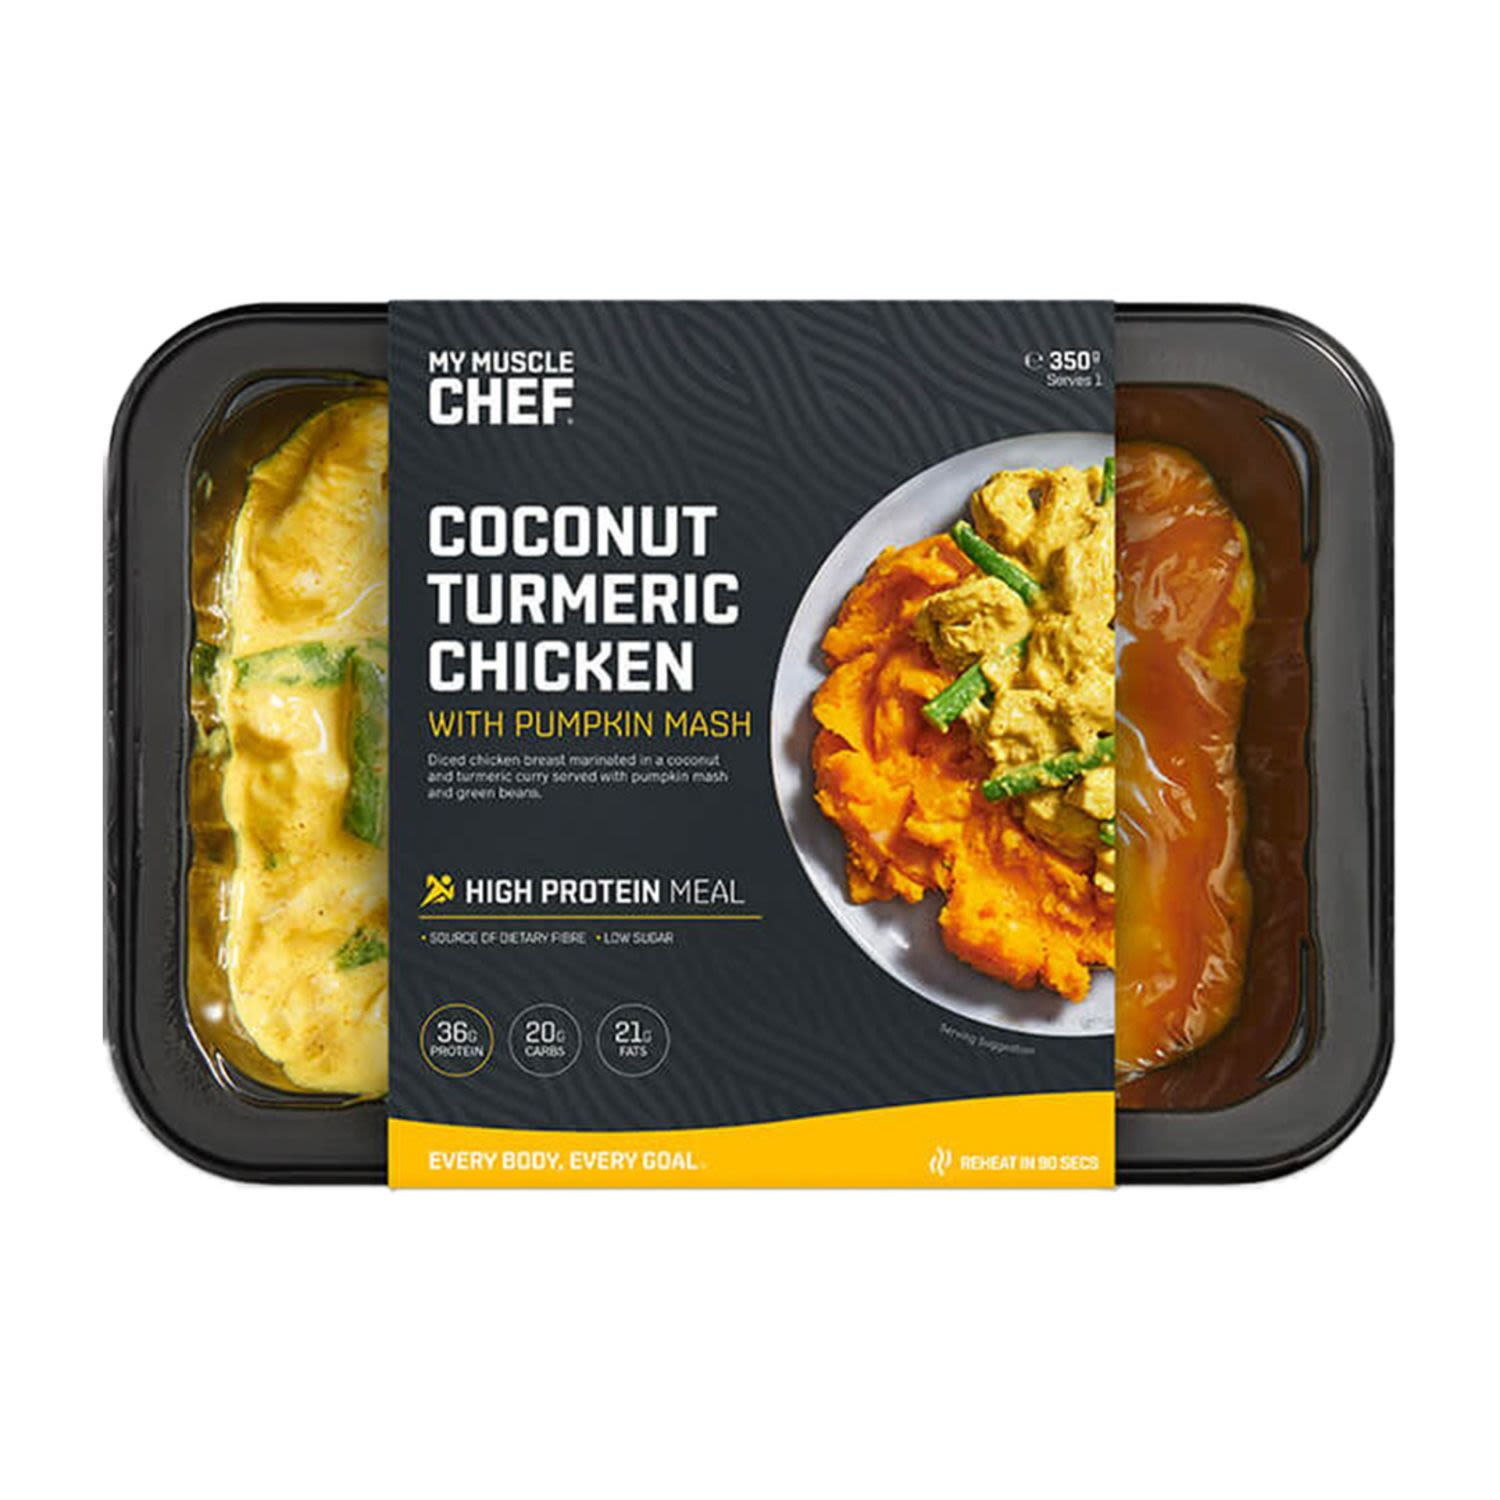 My Muscle Chef Coconut Turmeric Chicken with Pumpkin Mash, 330 Gram